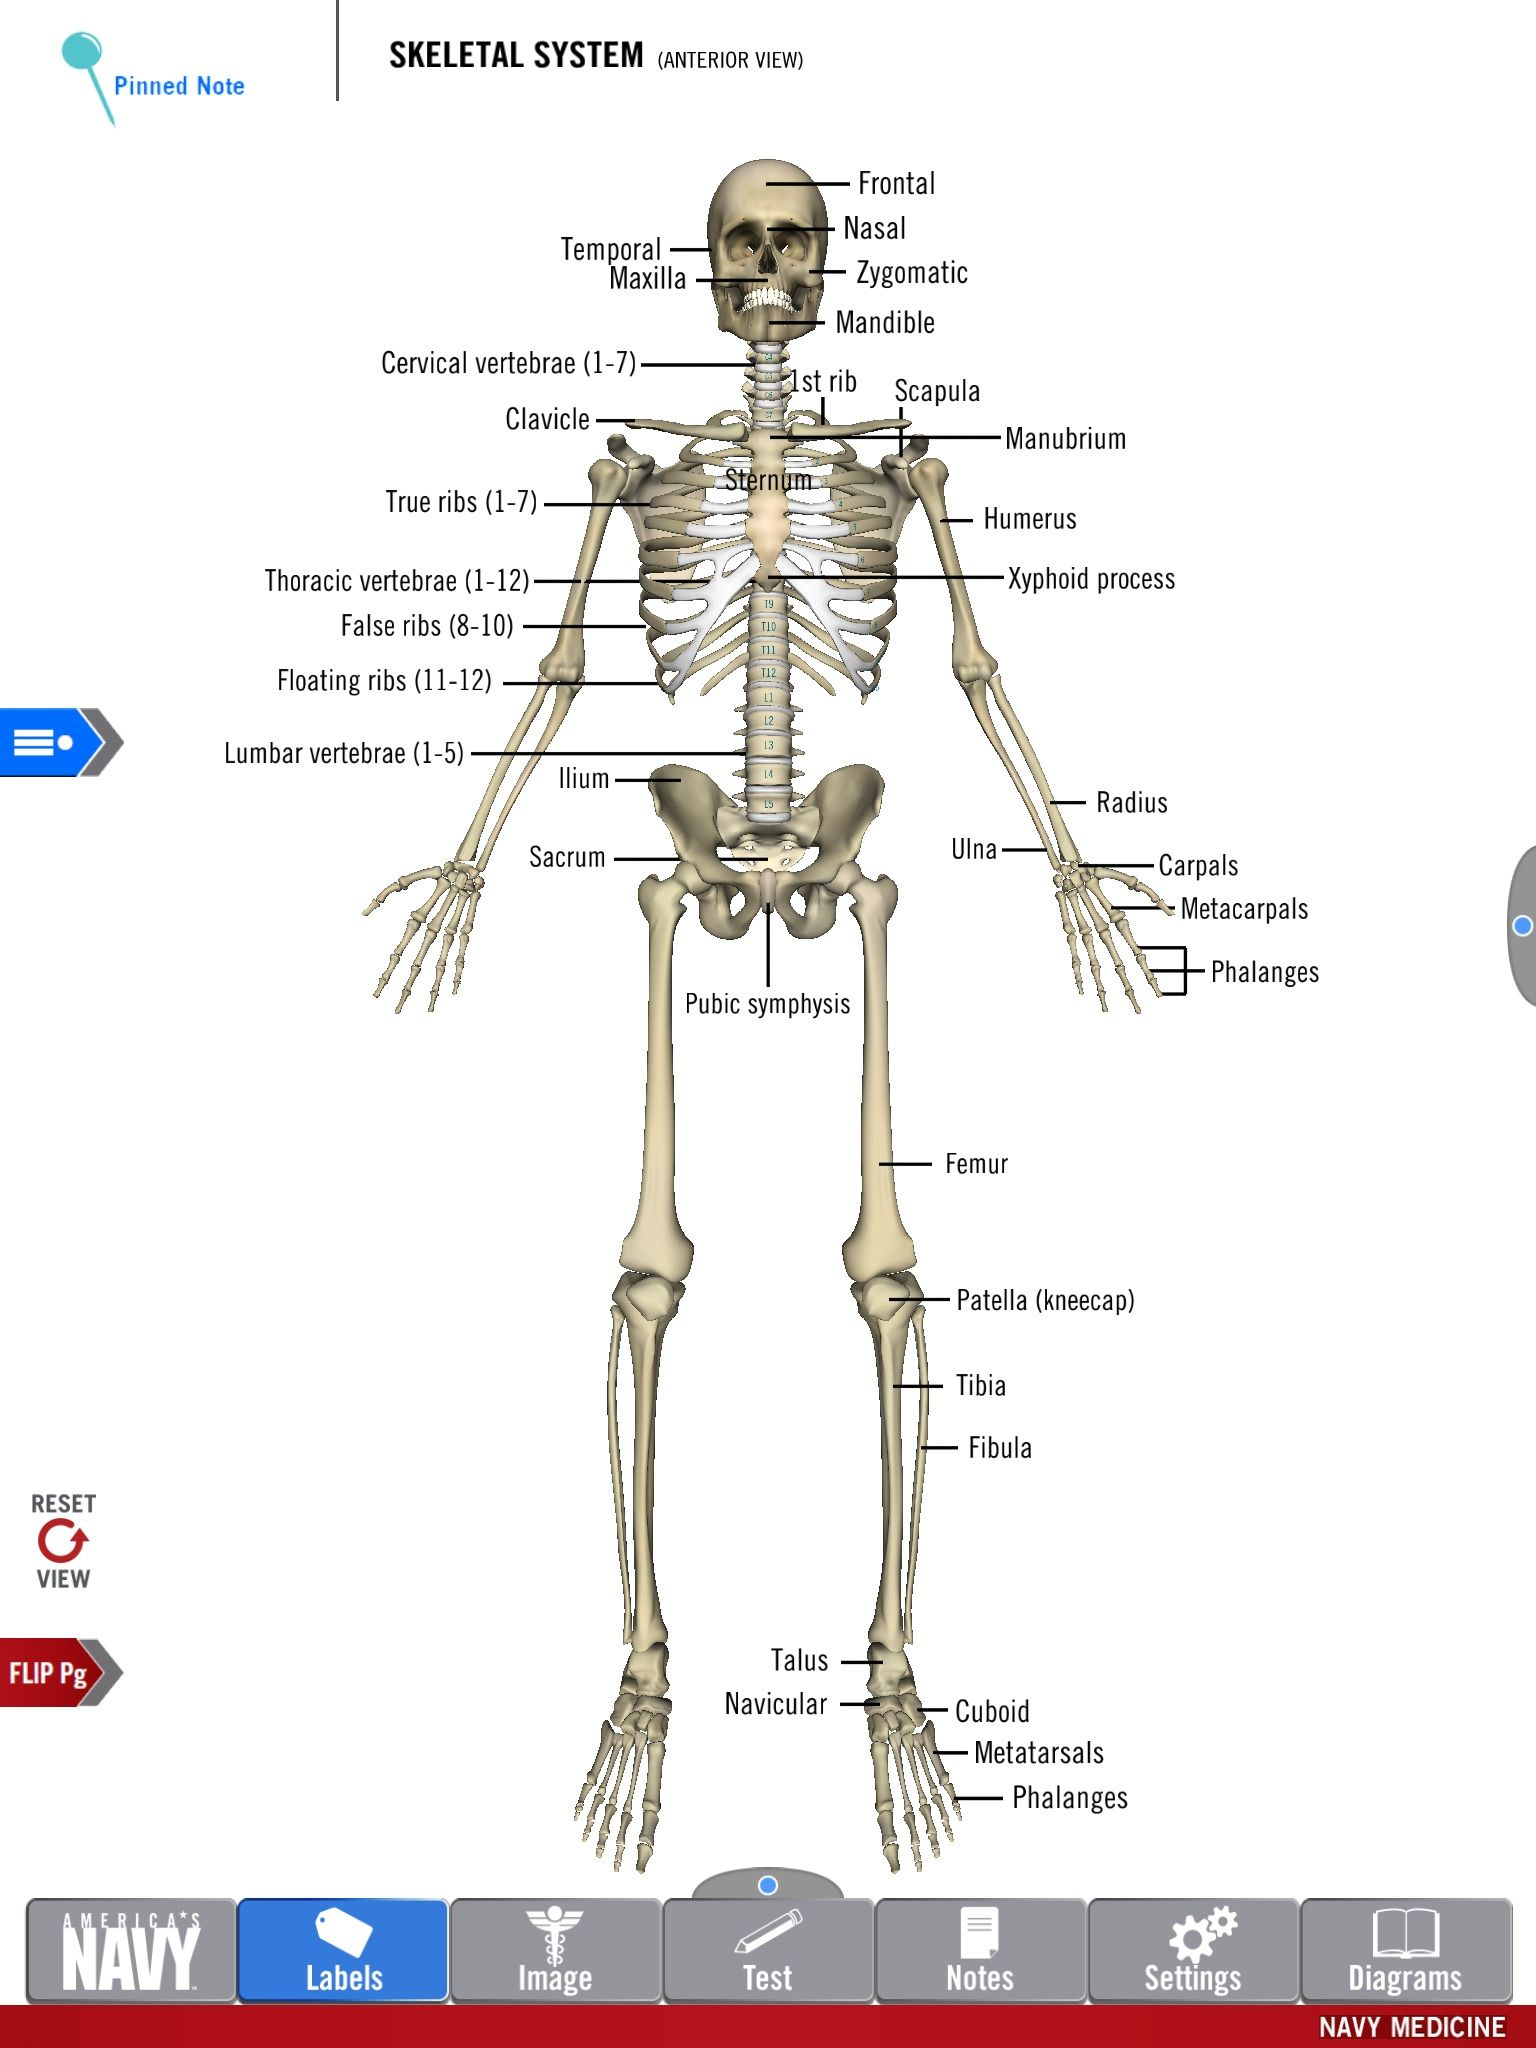 anatomy study guide unit 1 Study 27 unit 1 lab flashcards from maggie b on studyblue  antphy 2304  study guide (2017-18 alsup) chapter 15: digestive system body regions.